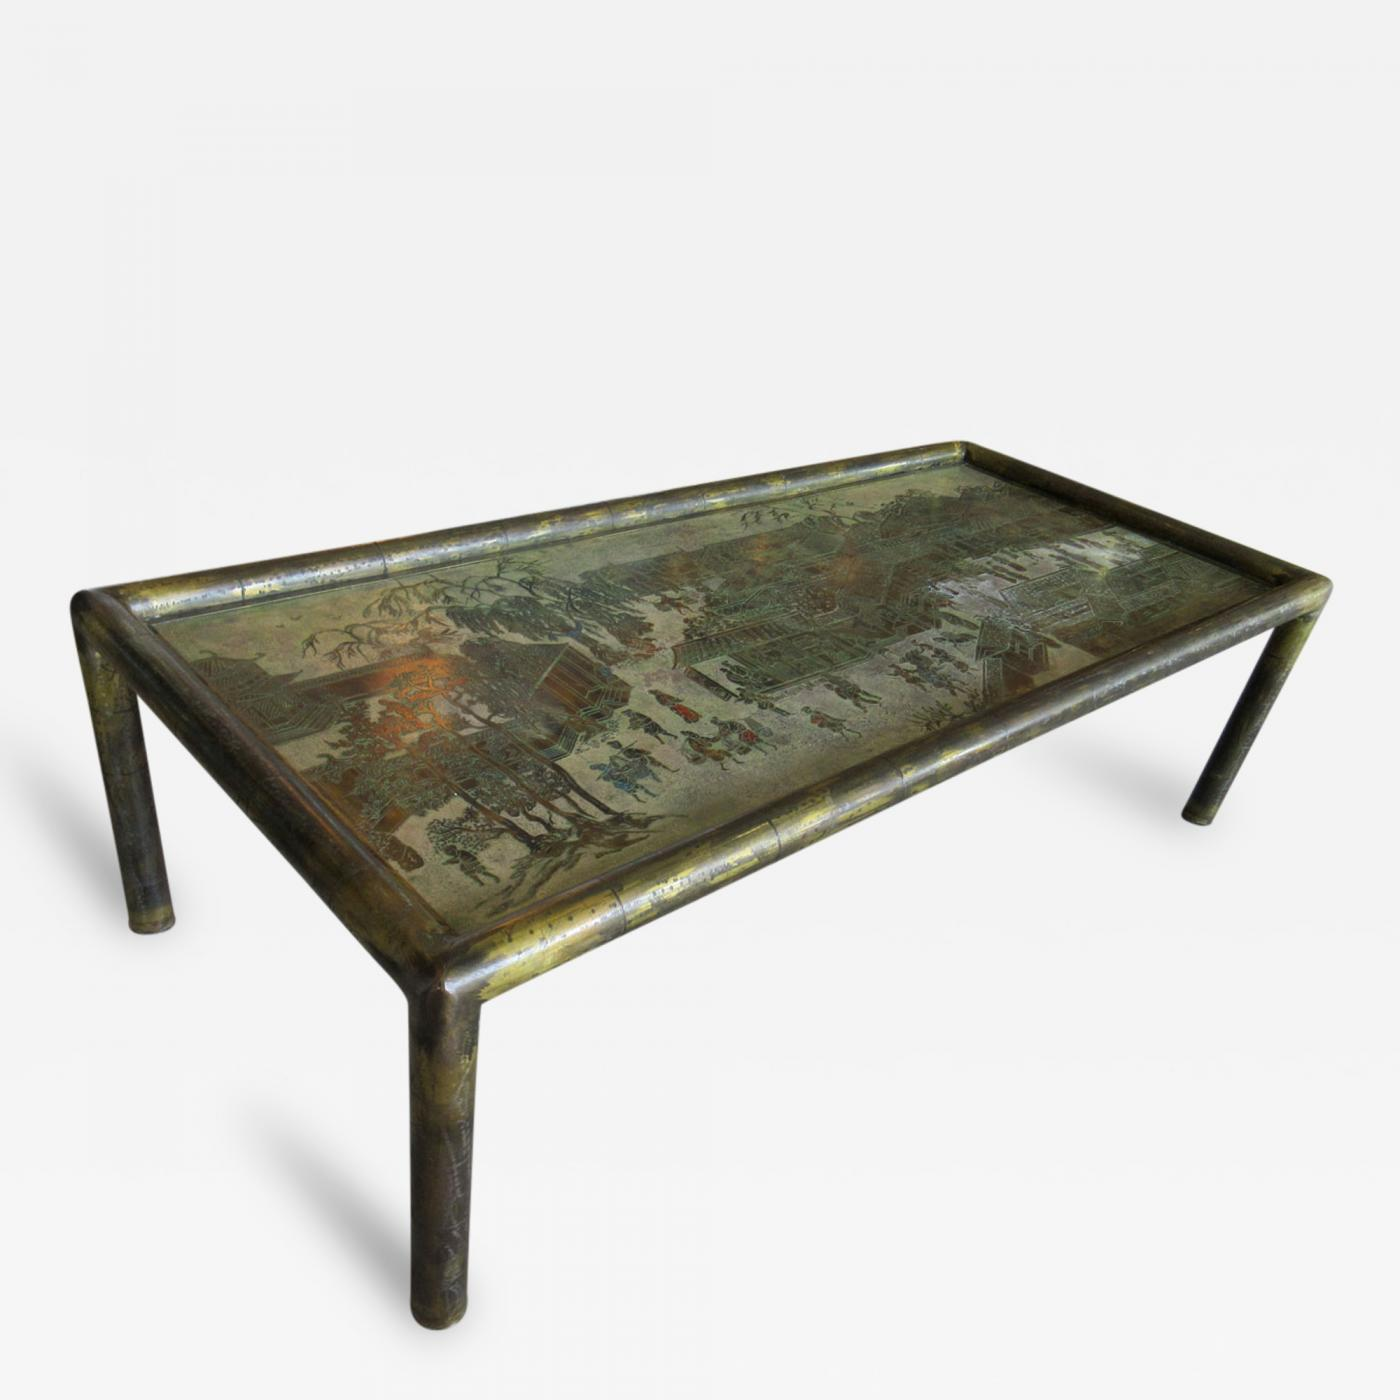 Philip kelvin laverne philip and kelvin laverne etched bronze coffee table Bronze coffee tables